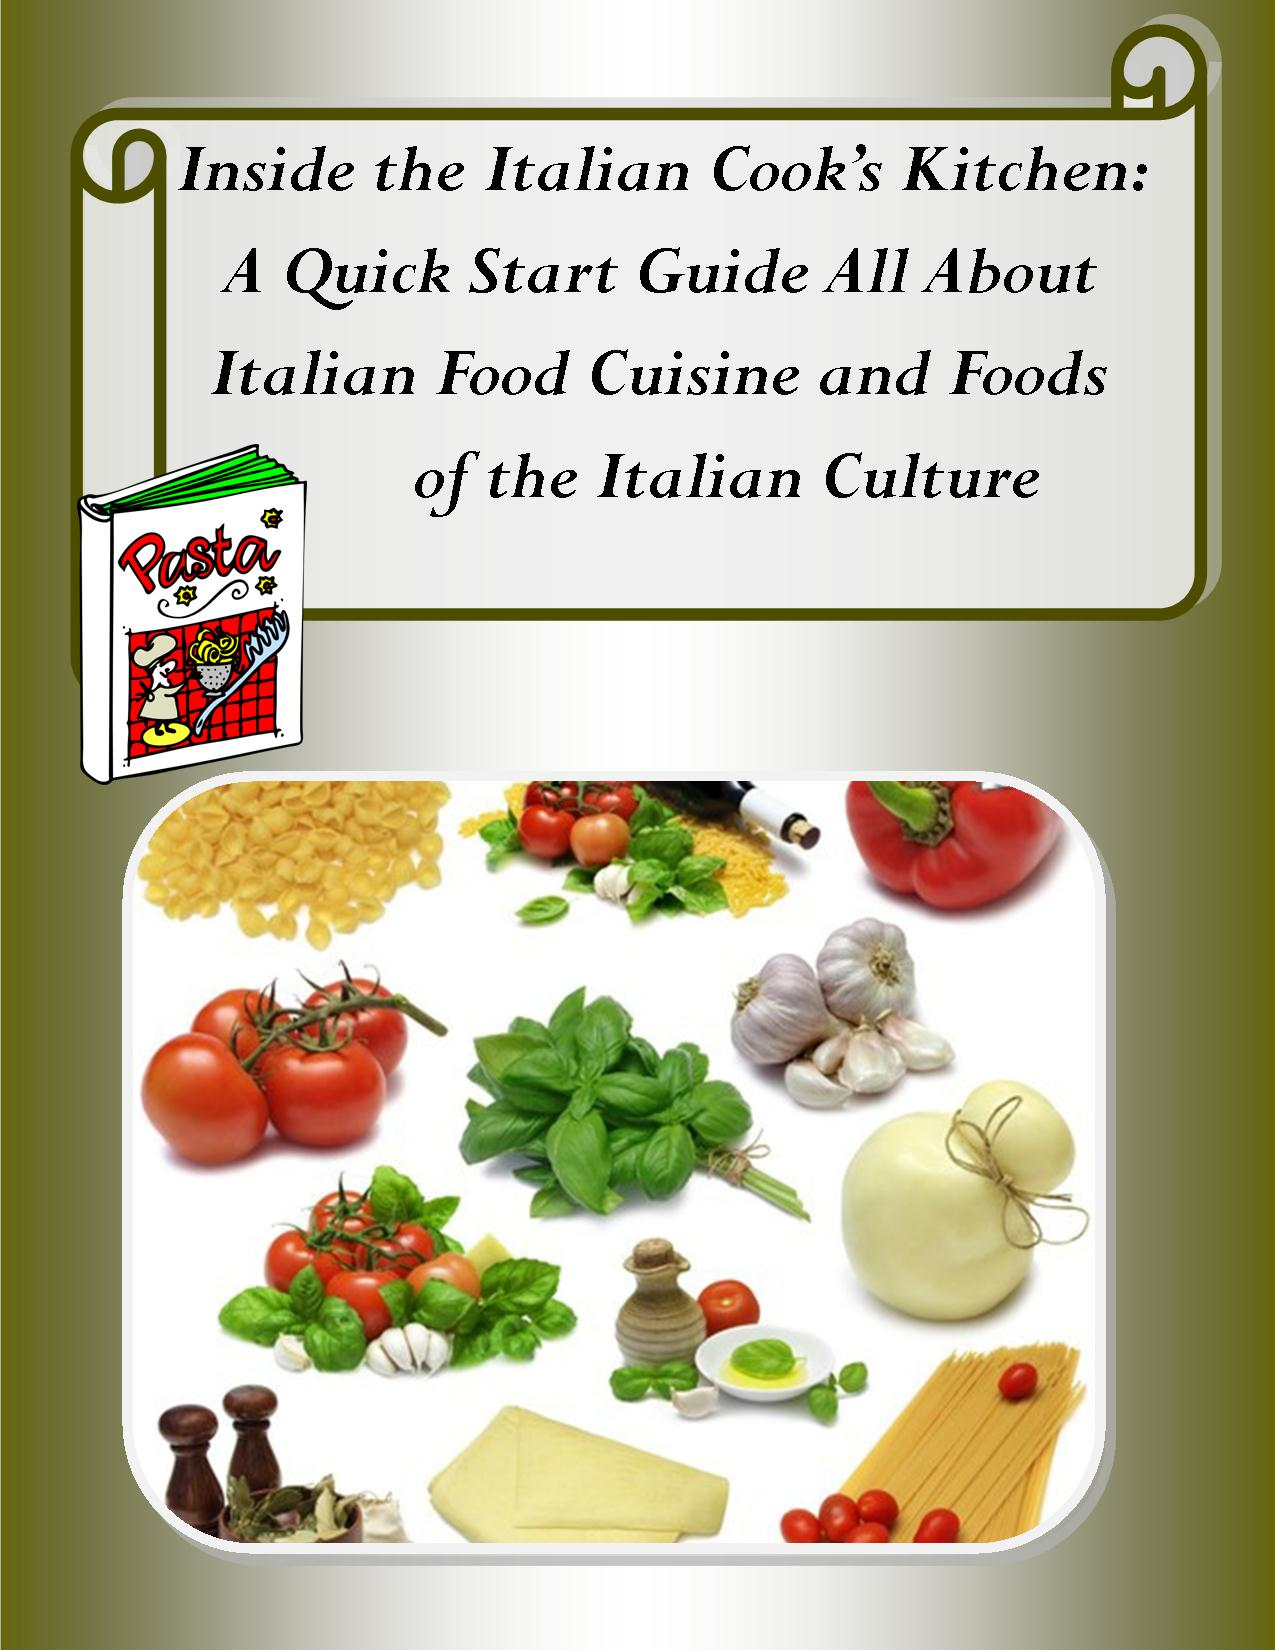 Inside the Italian Cook's Kitchen: A Quick Start Guide All About Italian Food Cuisine